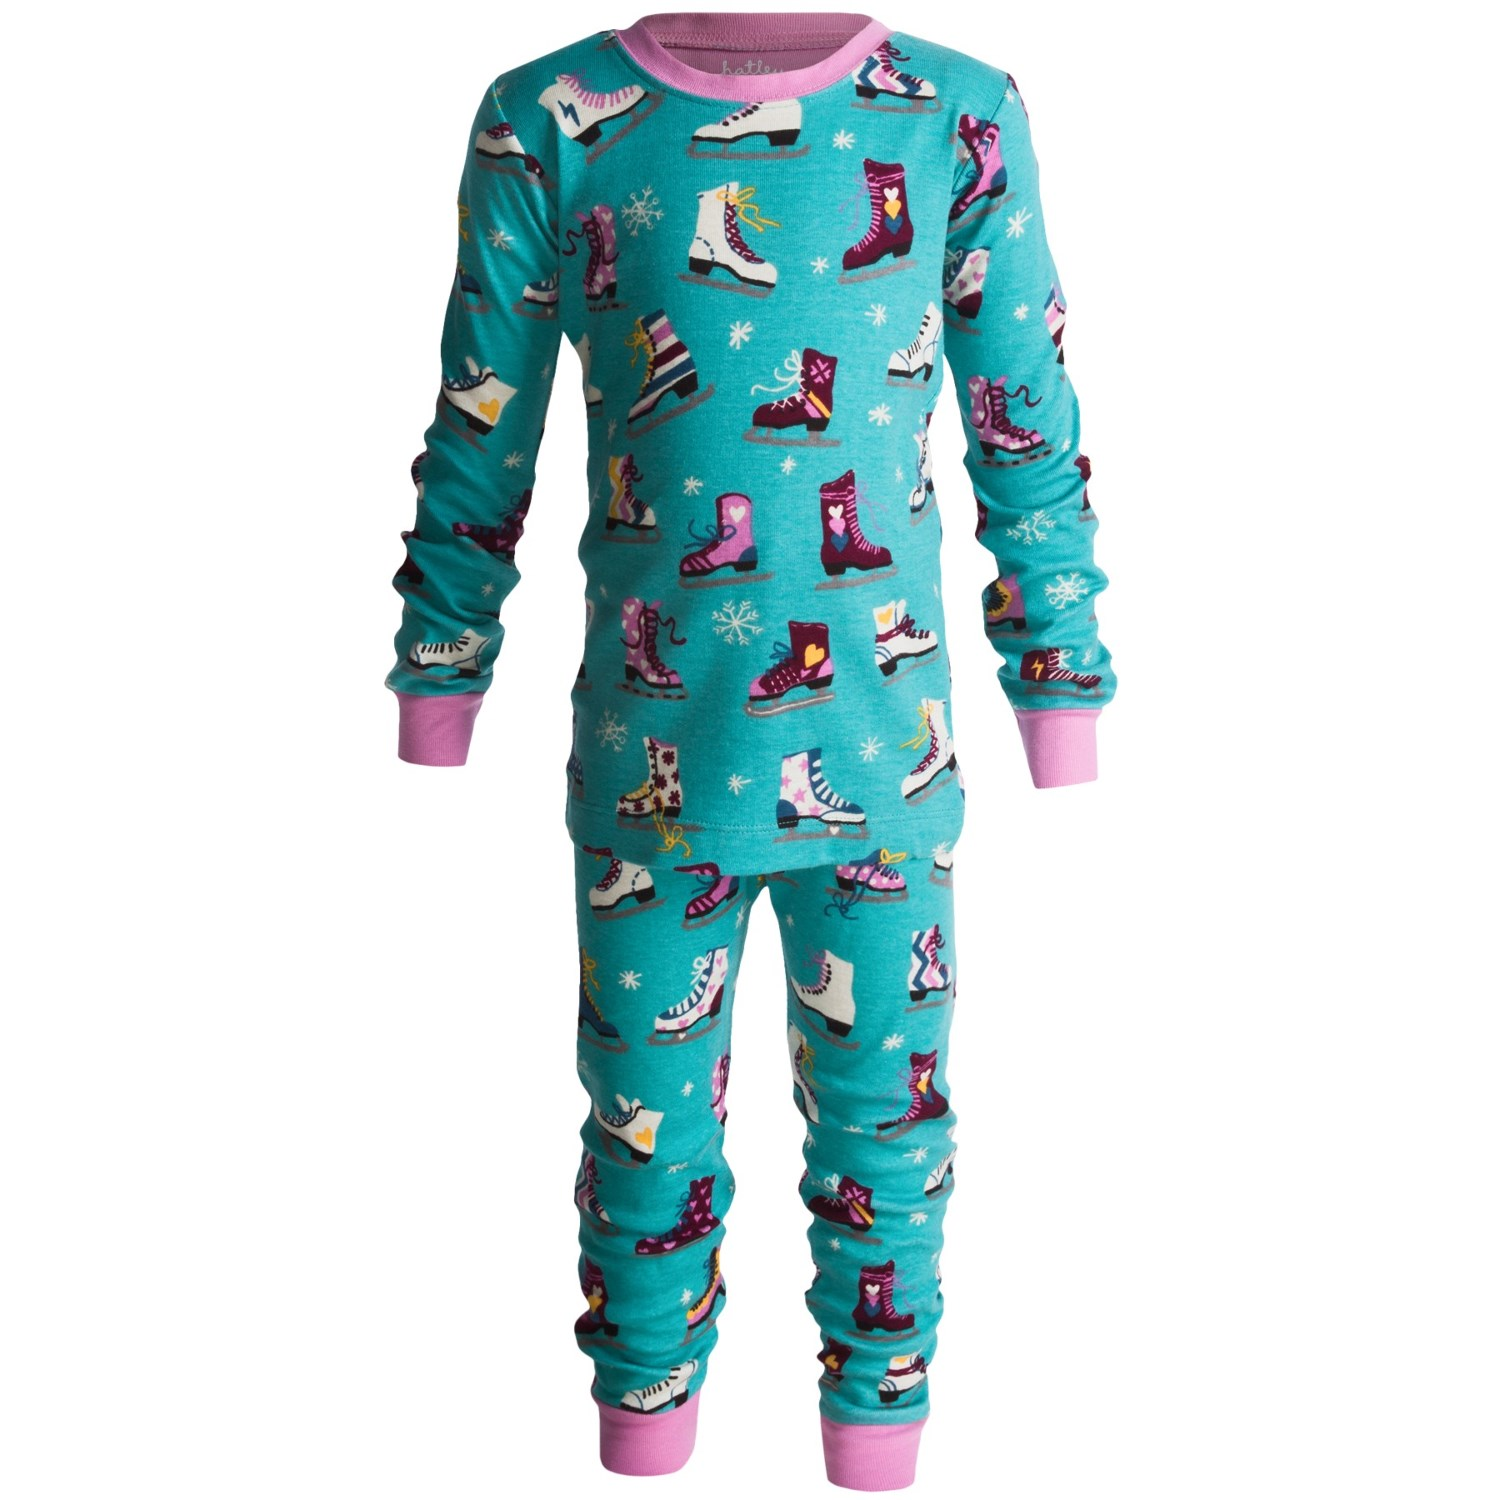 Cotton pajamas are available with long sleeves or short sleeves and long pants or shorts. Designs include characters and patterns that boys and girls are sure to love. Babies and toddlers wiggle frequently beneath the blankets, which is why one-piece pajama sets are ideal for wiggly babies.